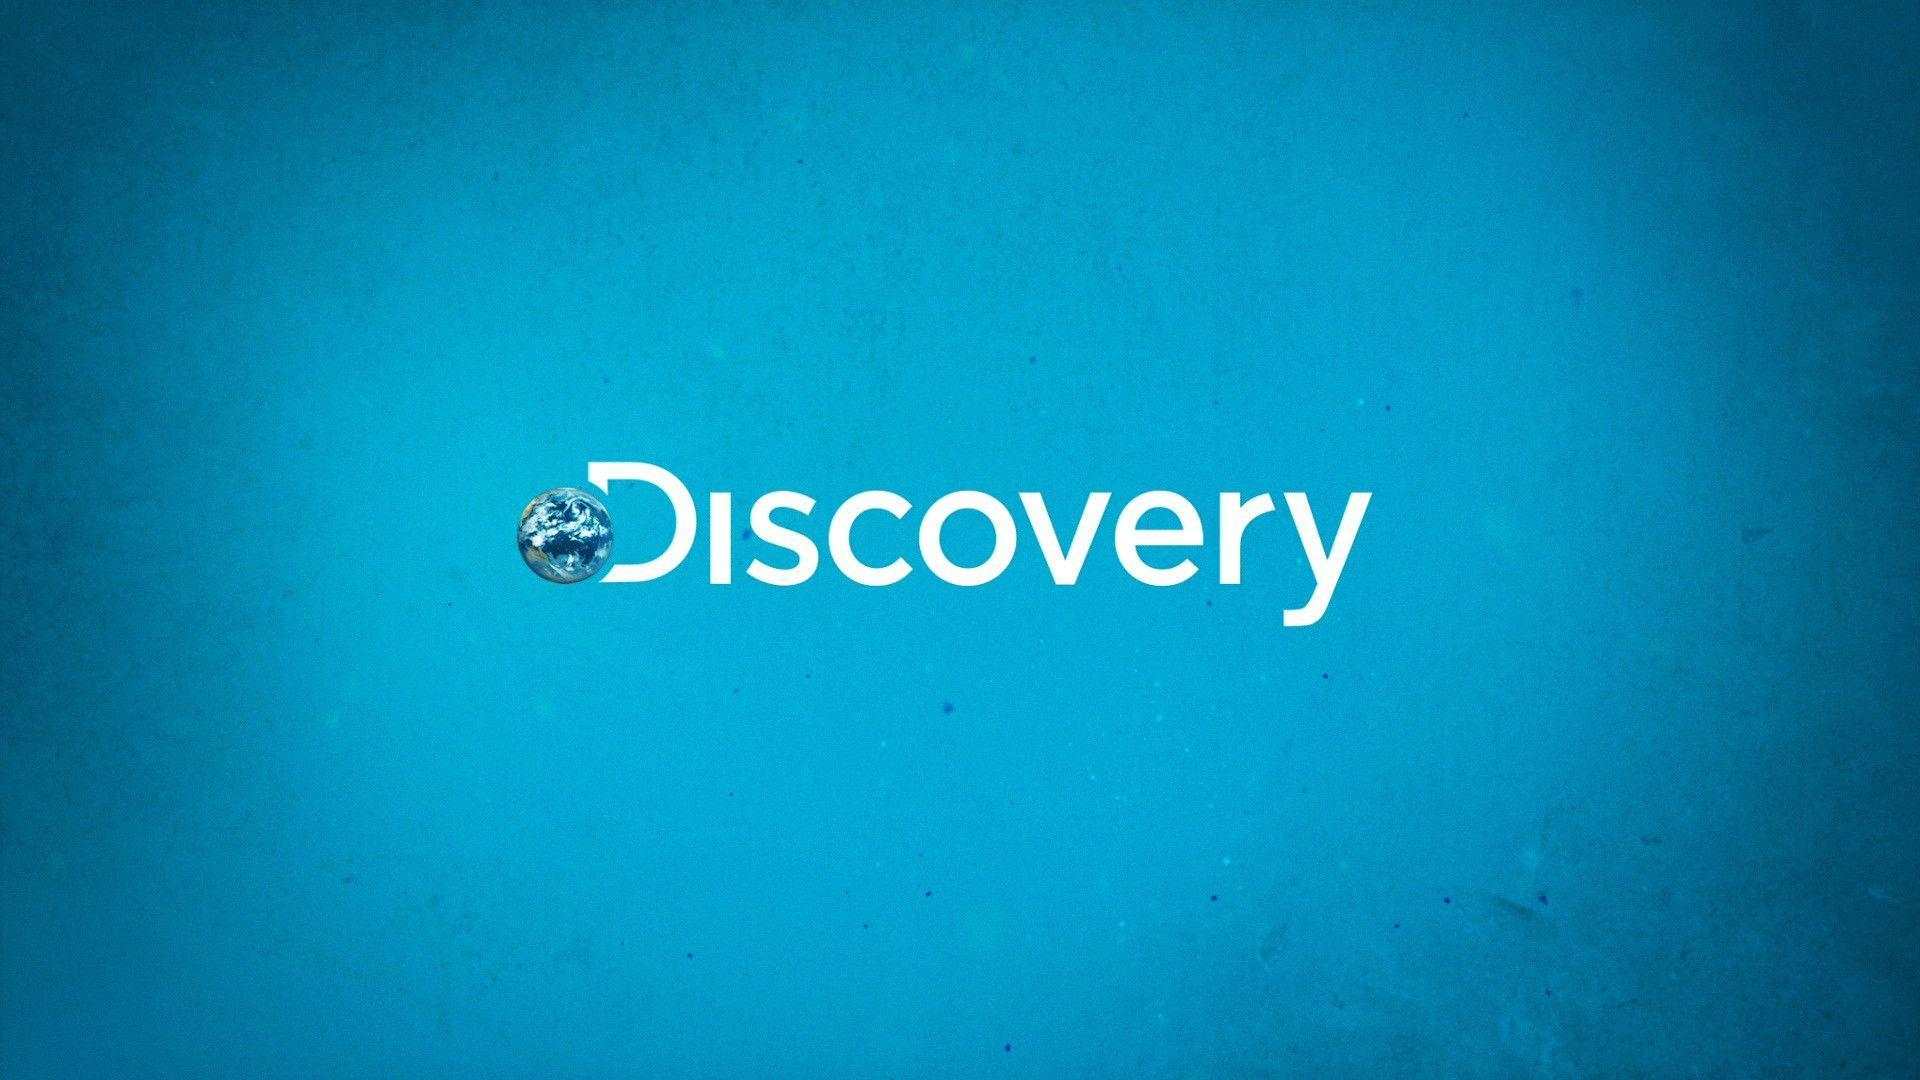 Discovery Channel Wallpapers - Wallpaper Cave